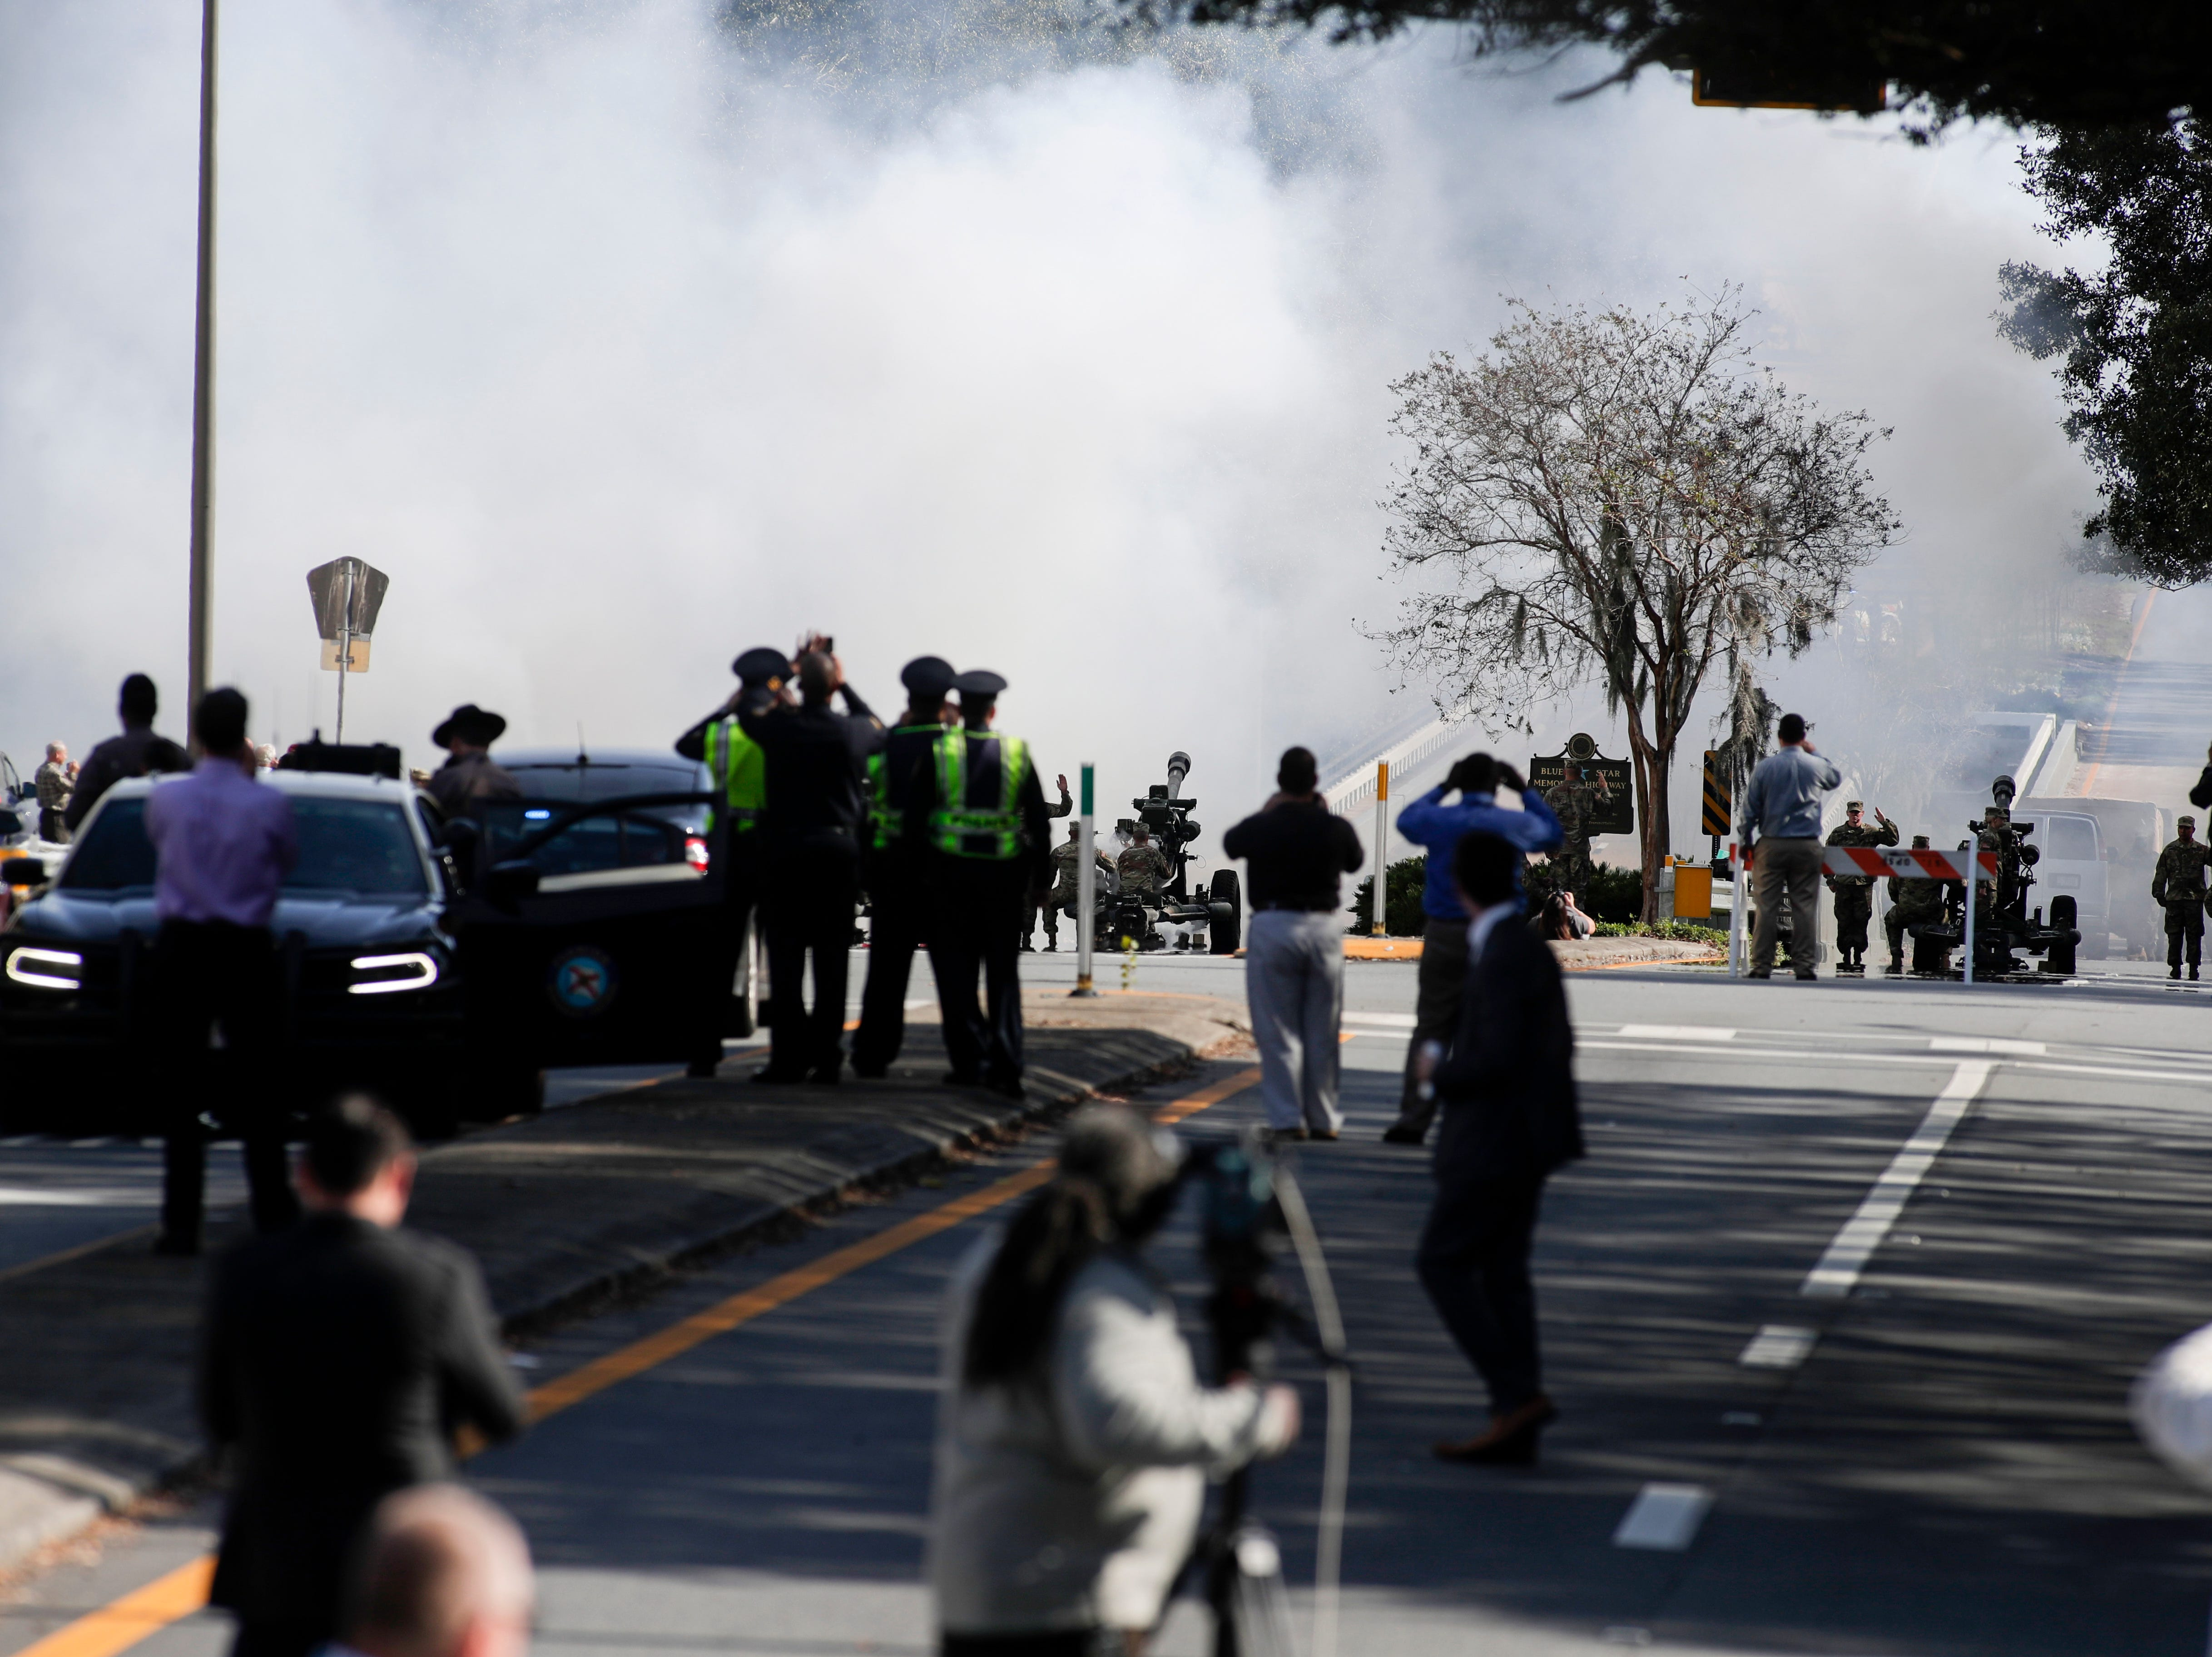 Apalachee Parkway fills up with smoke as canons are blown after Gov. Ron DeSantis takes the oath of office during the 2019 inauguration ceremony on the steps of the Historic Capitol Building in Tallahassee Tuesday, Jan. 8, 2019.